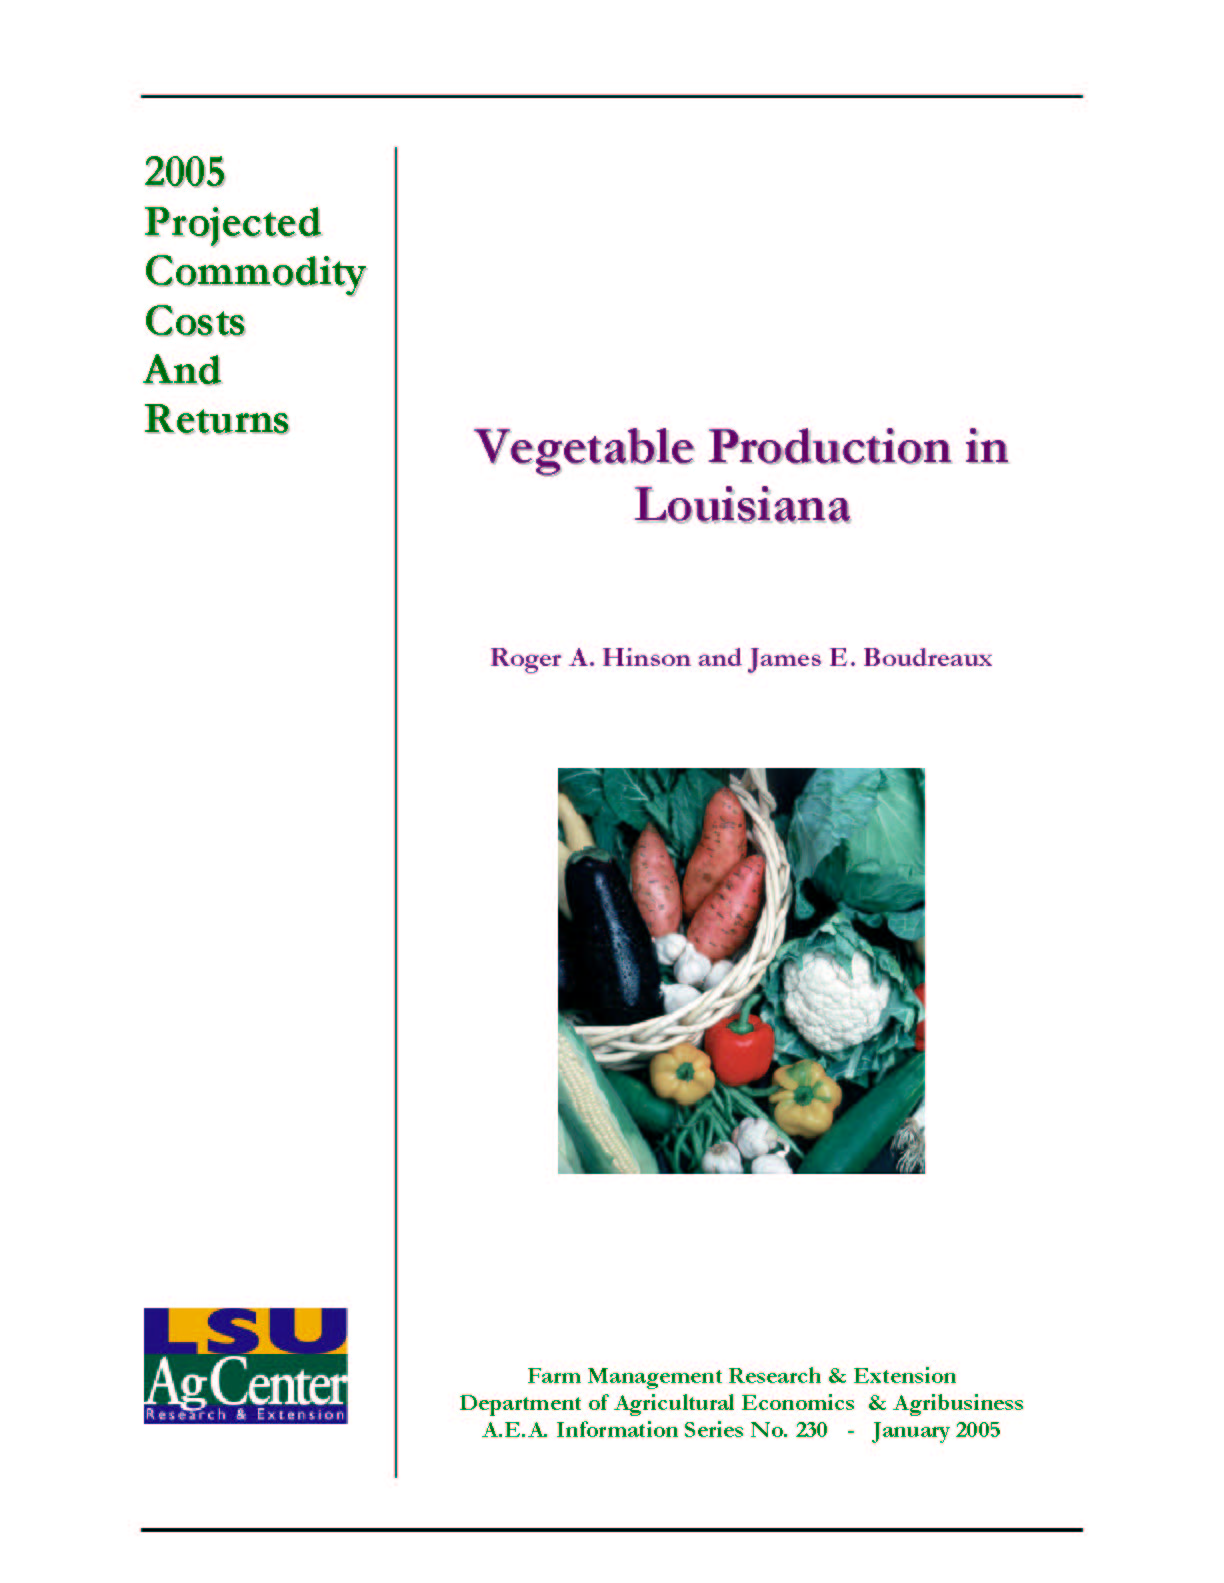 2005 Projected Costs of Vegetable Production in Louisiana